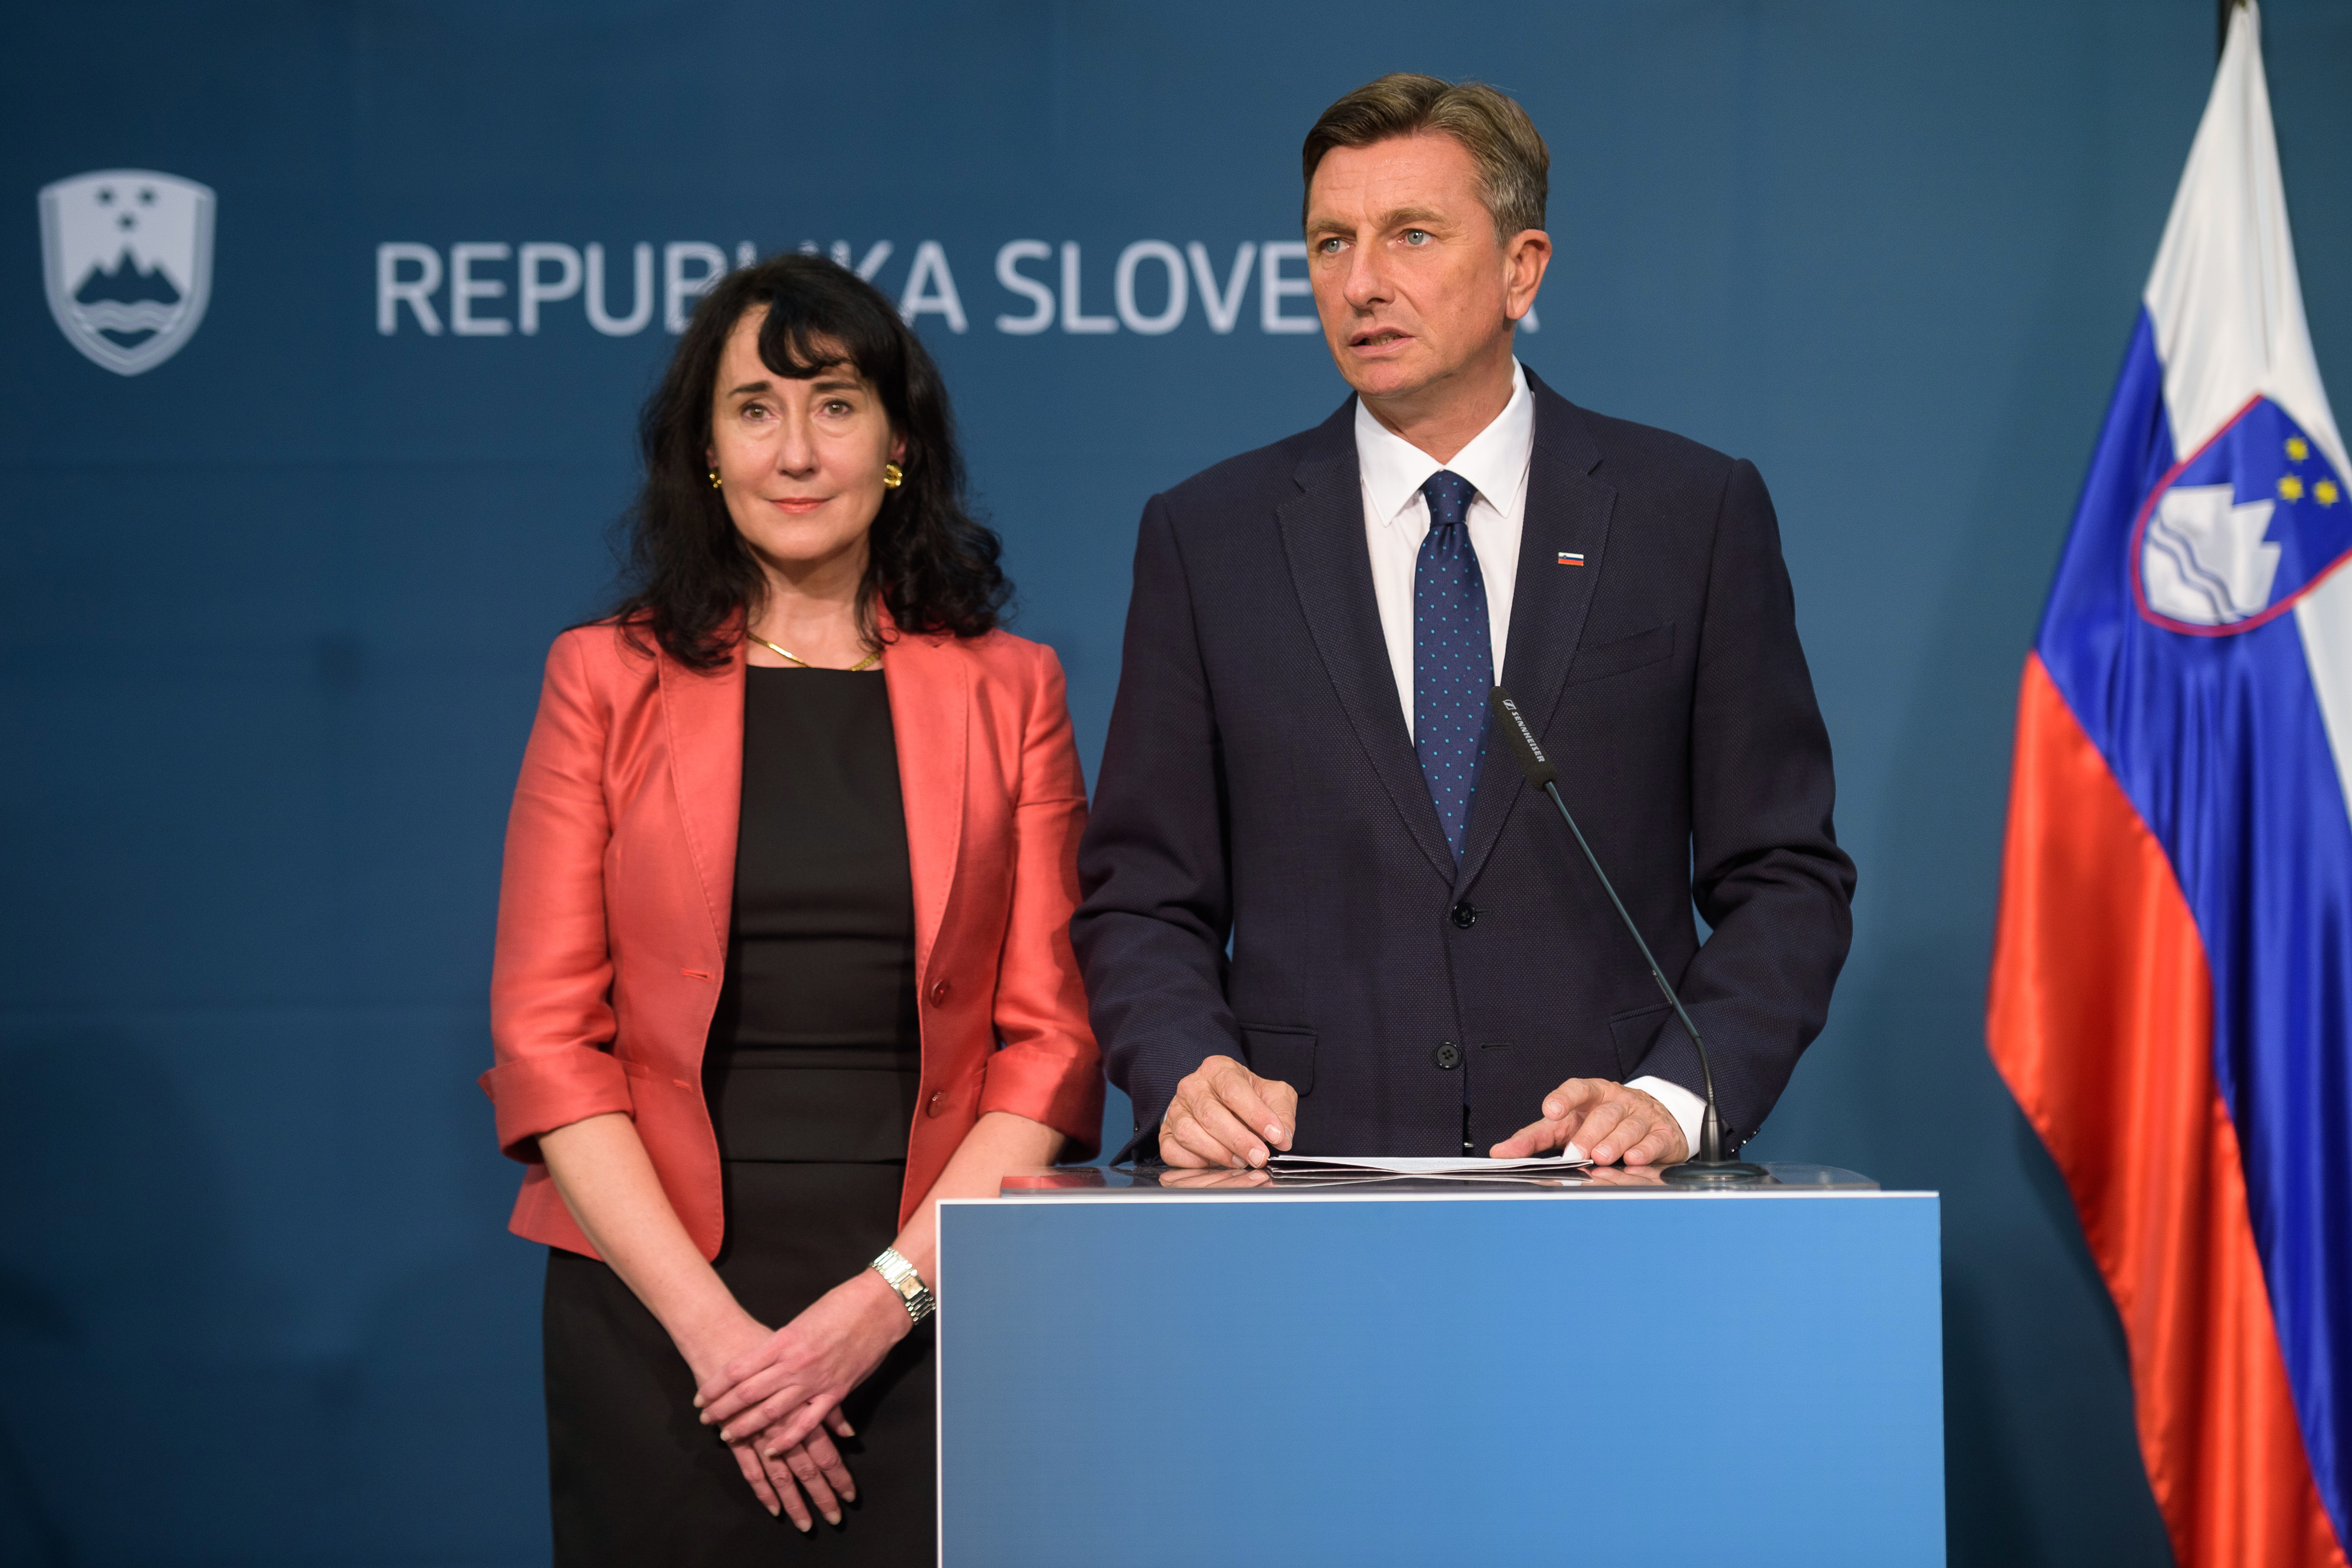 Slovenian President Borut Pahor, (seen here with partner Tanja Pecar) said a Brexit extension 'would be an option'. — AFP pic